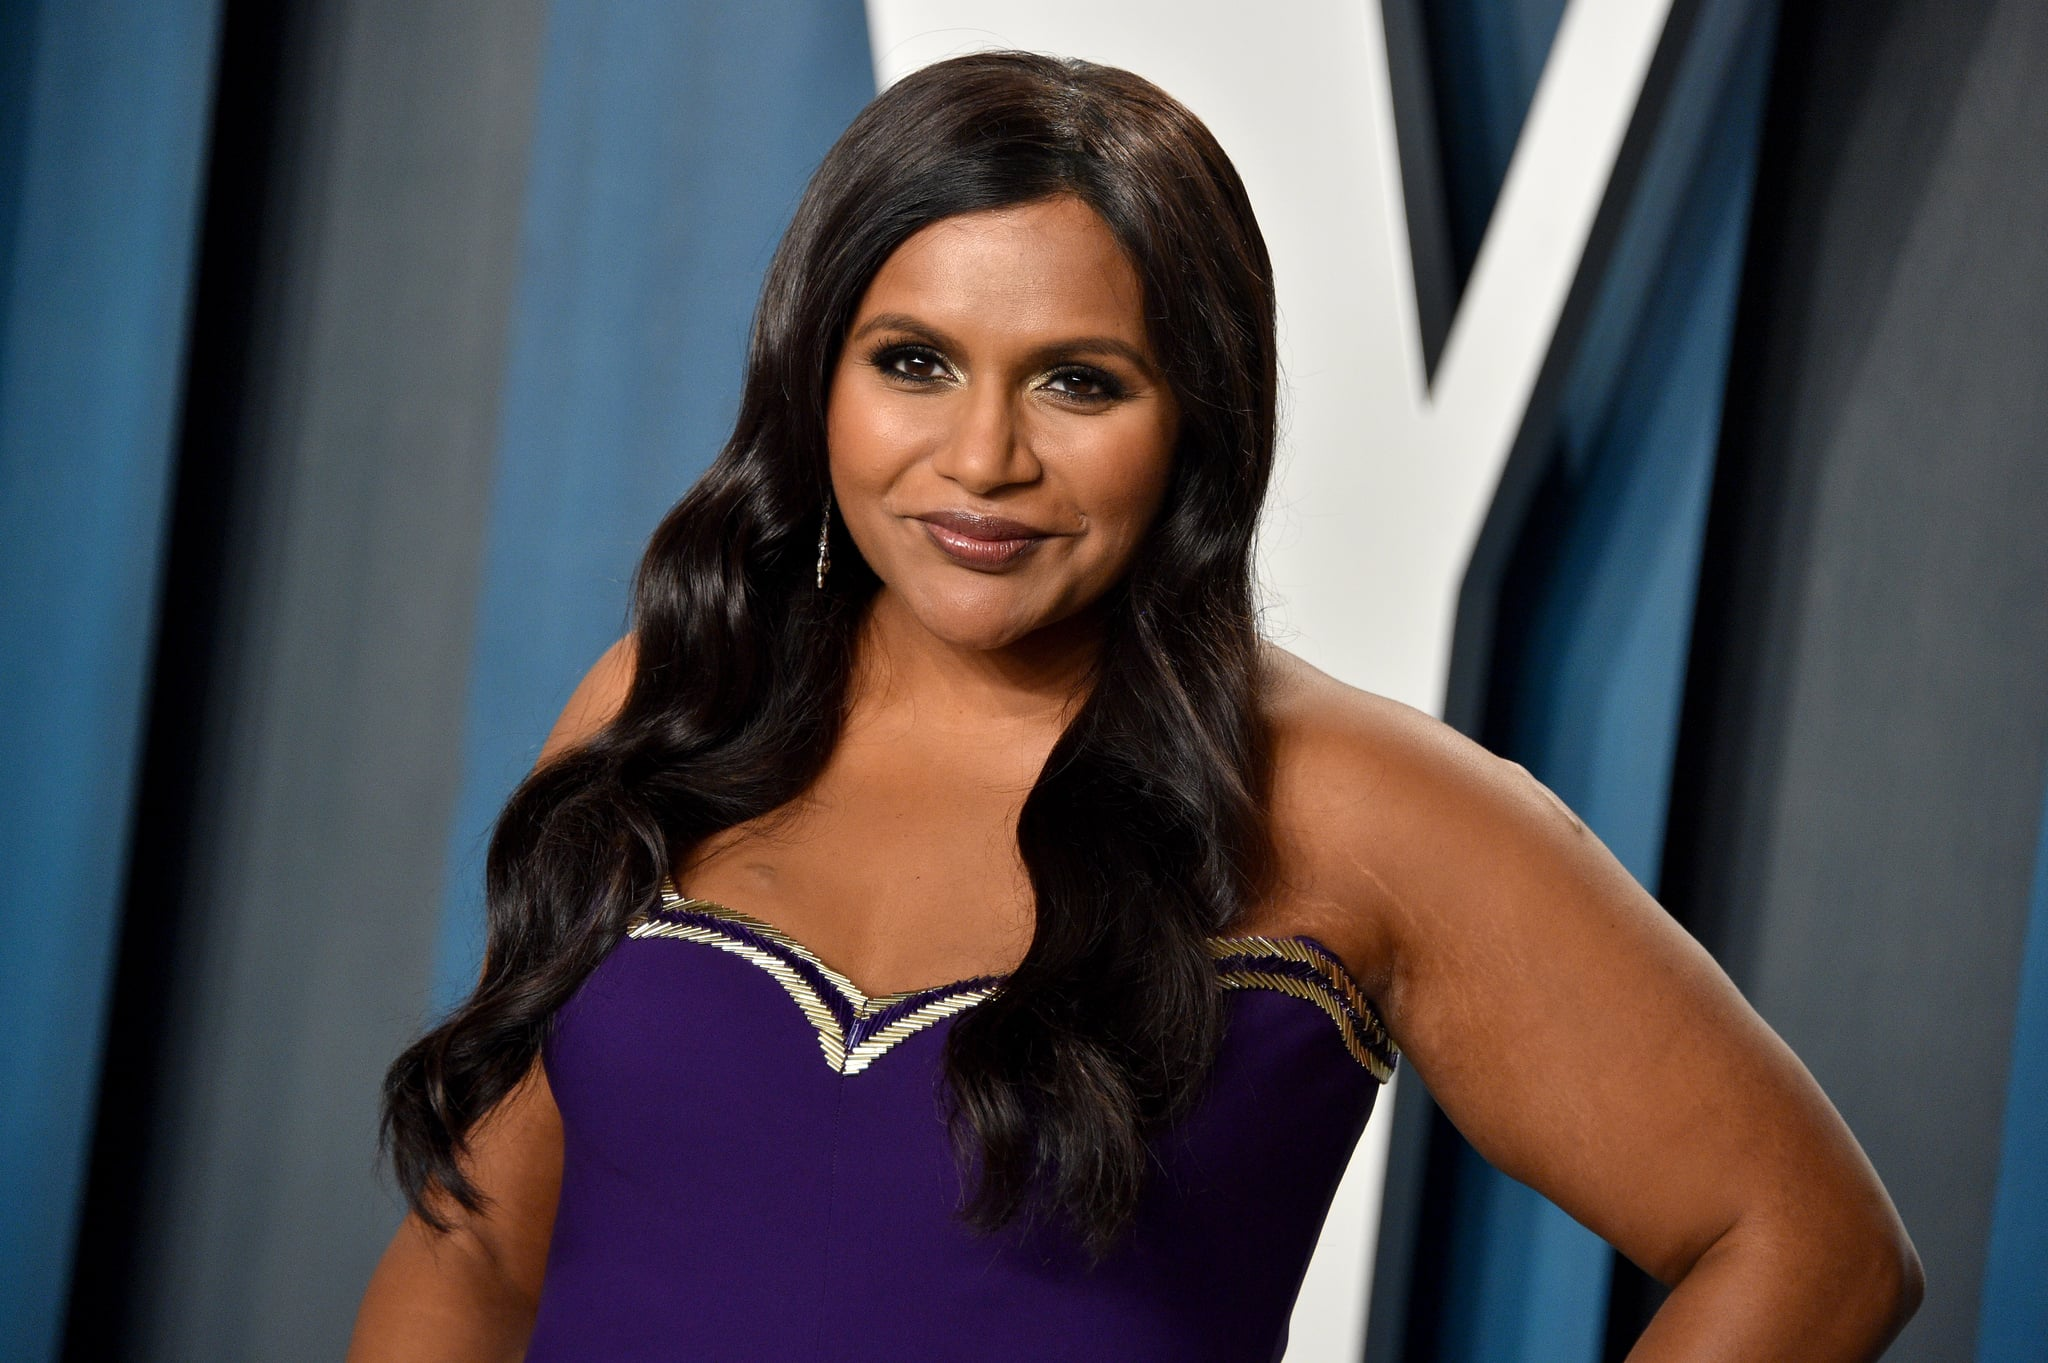 Surprise! Mindy Kaling Just Revealed She Gave Birth to a Baby Boy in September